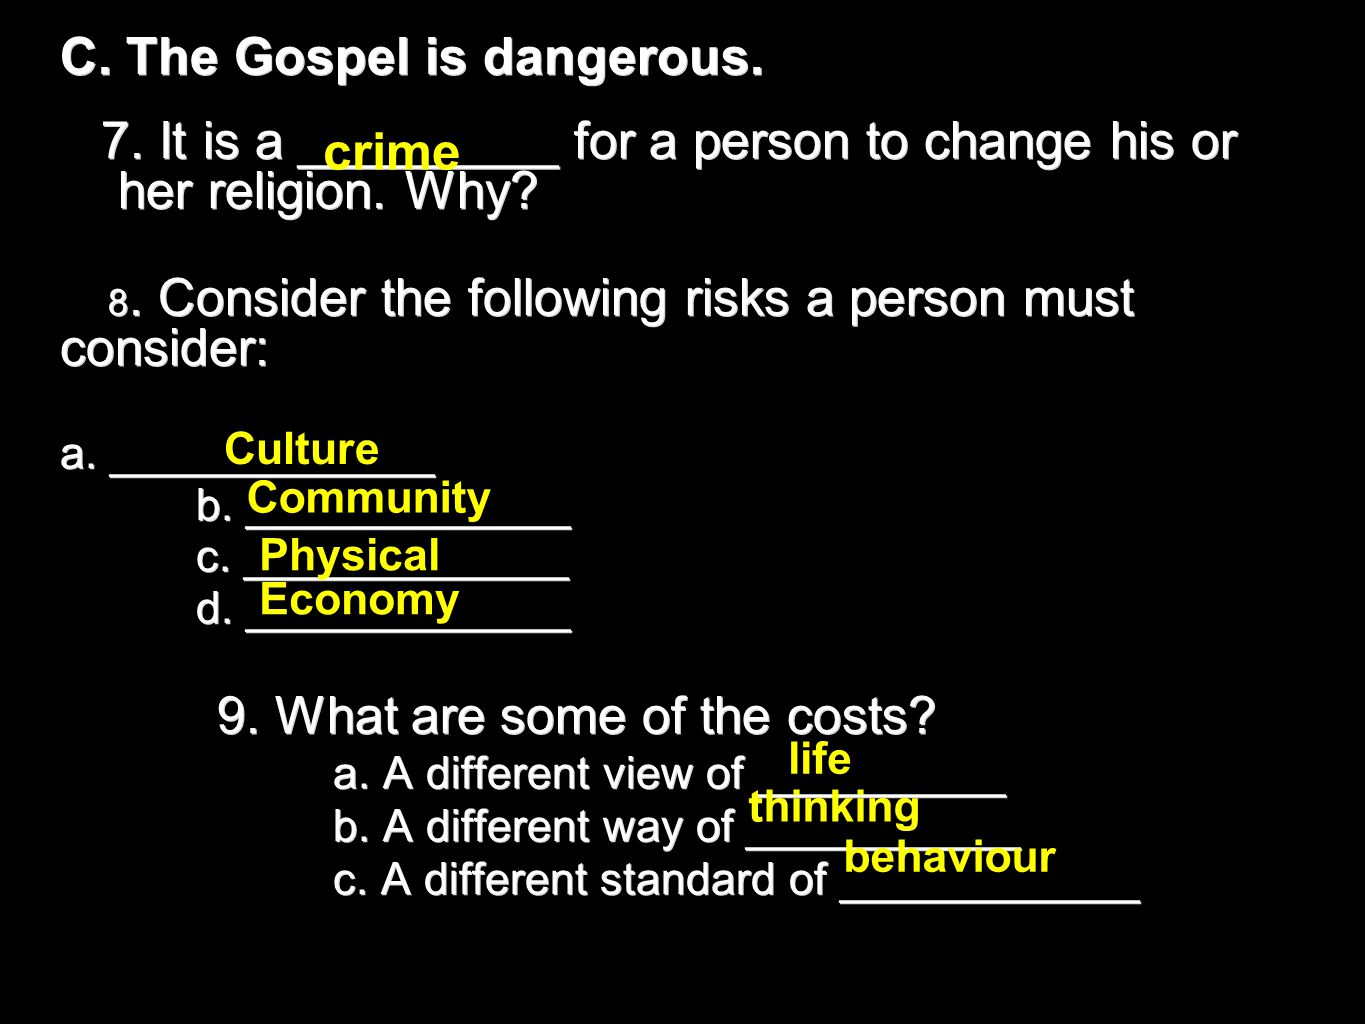 C. The Gospel is dangerous. 7. It is a _________ for a person to change his or her religion.